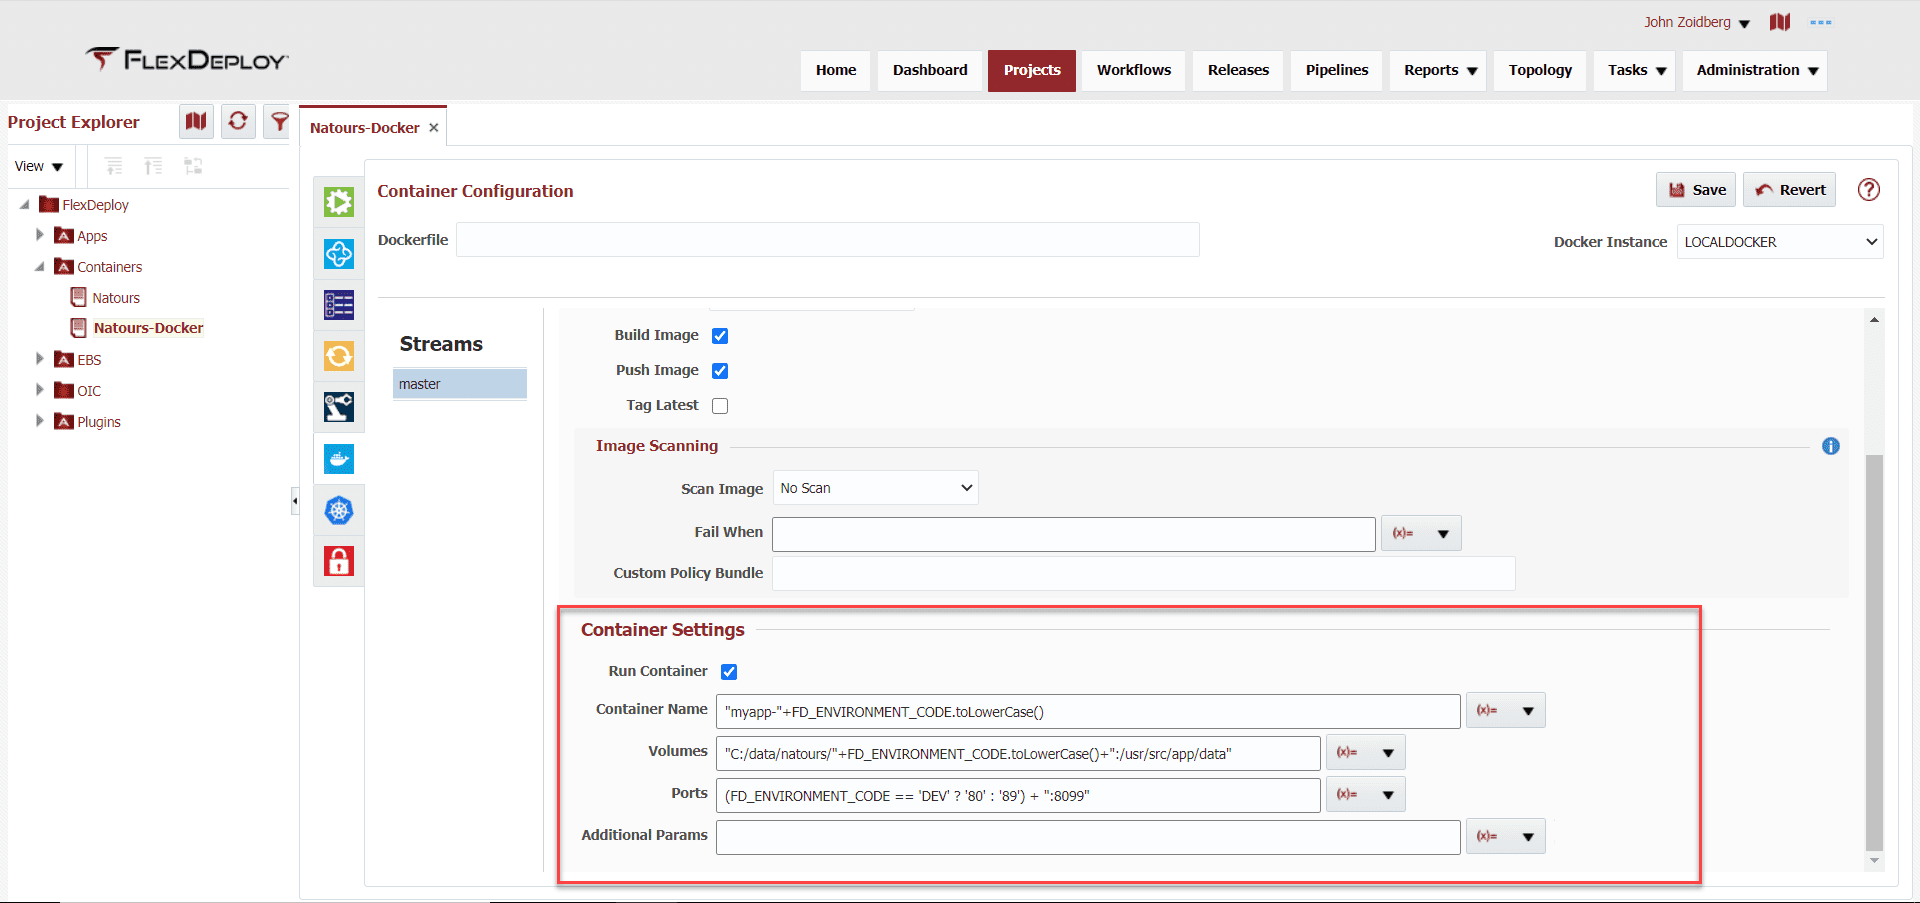 Container CD Settings in Projects Tab